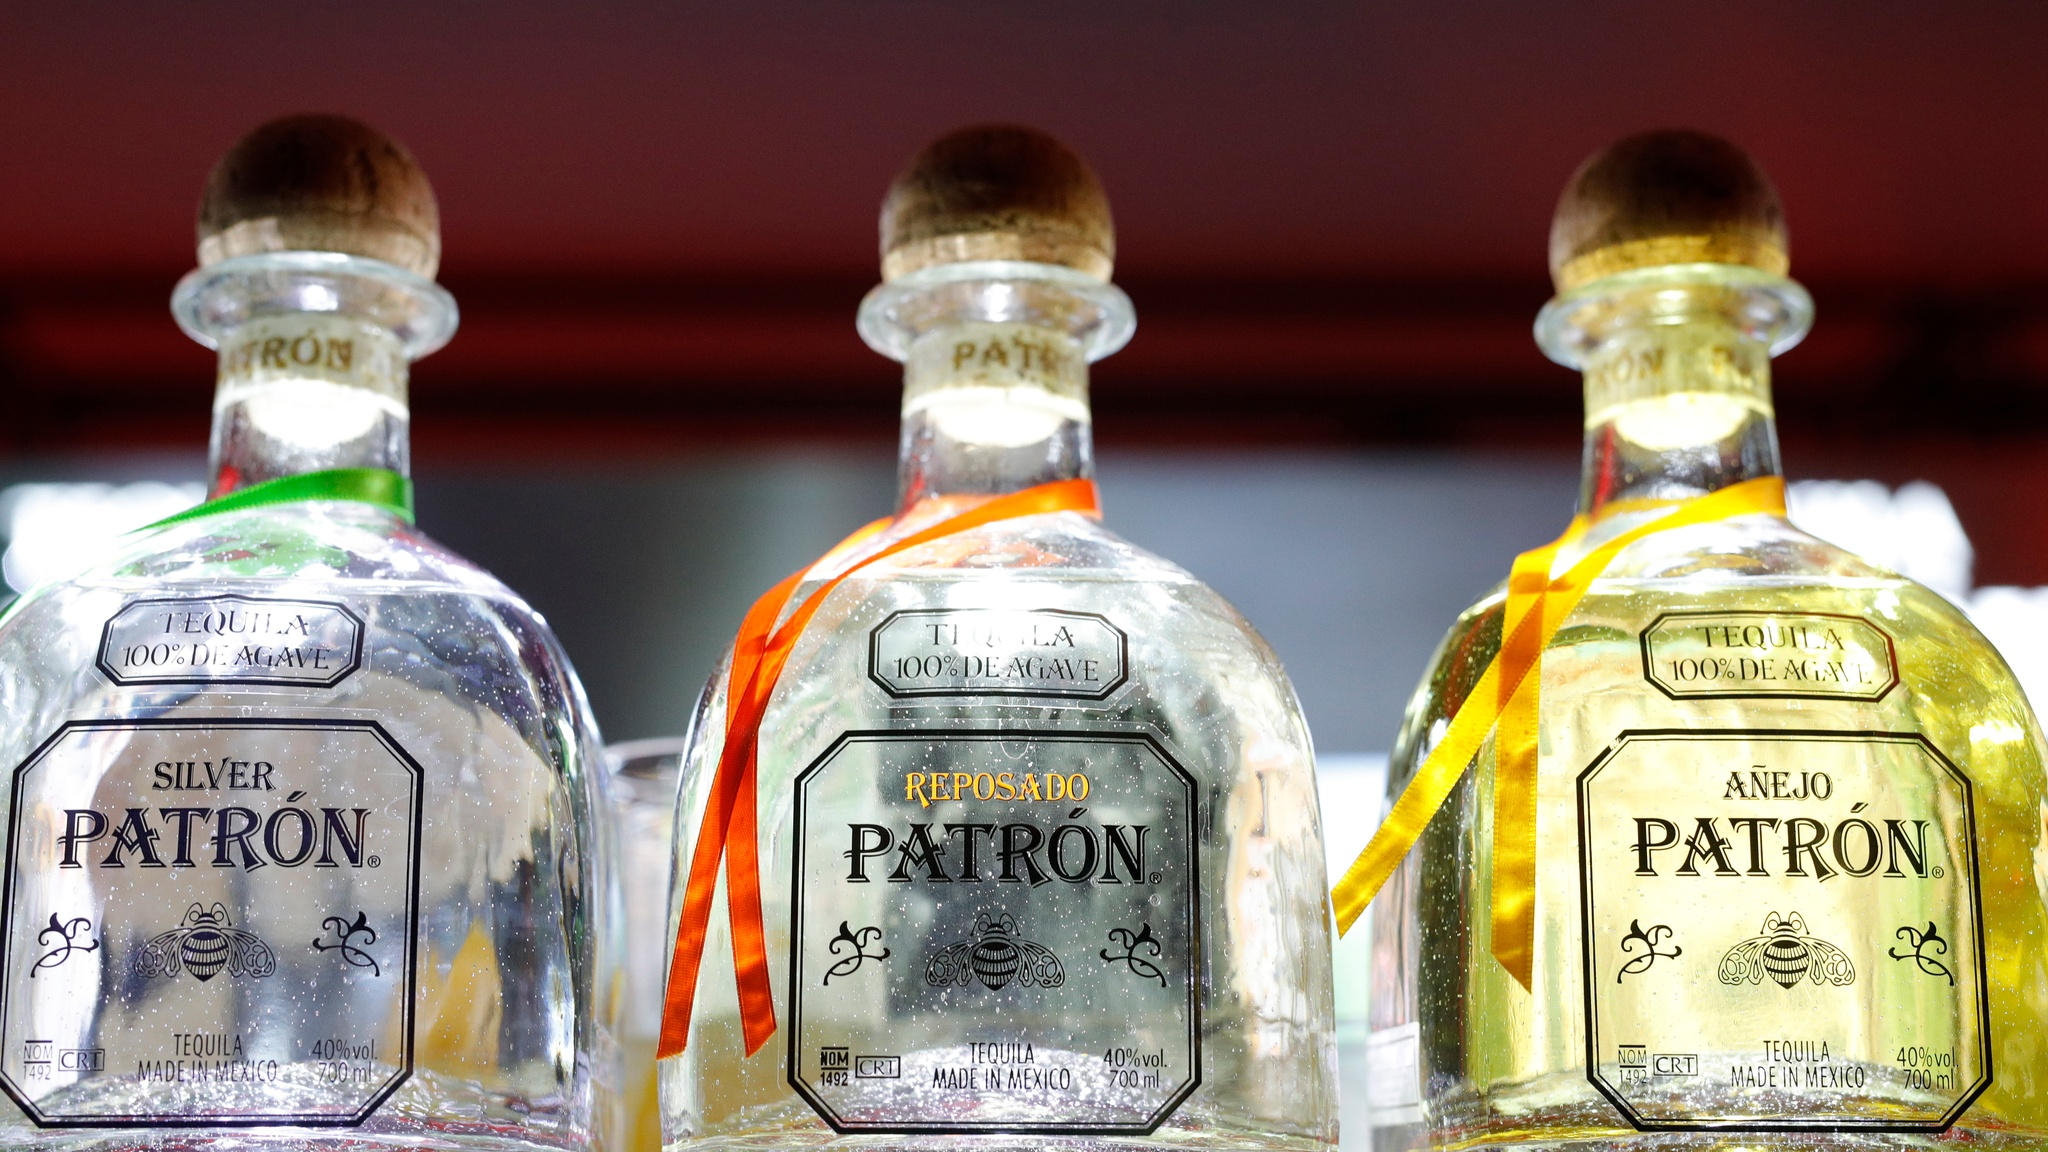 Bacardi to take control of tequila maker Patrón in $5.1bn deal